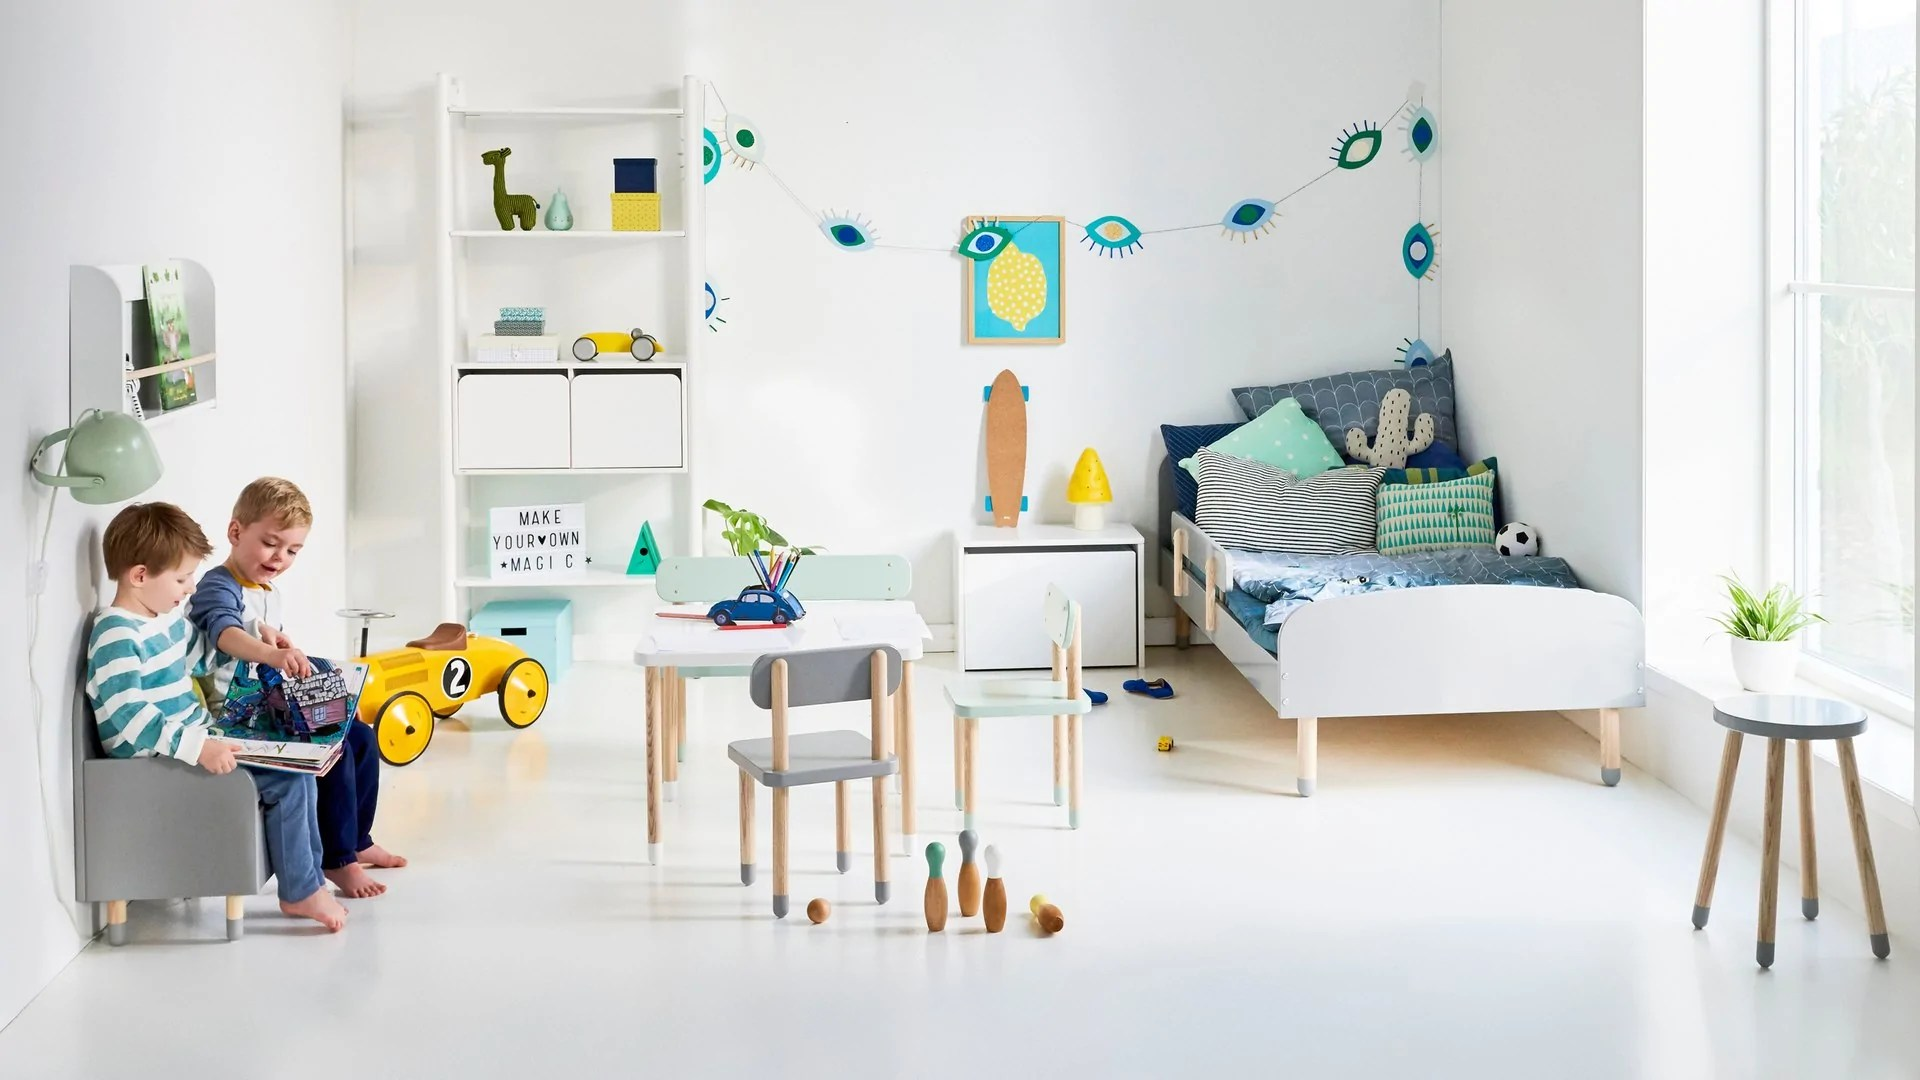 Kinderzimmer Online Shop Shop The Look Stillvolle Baby Kinderwelt Entdecken Kidswoodlove